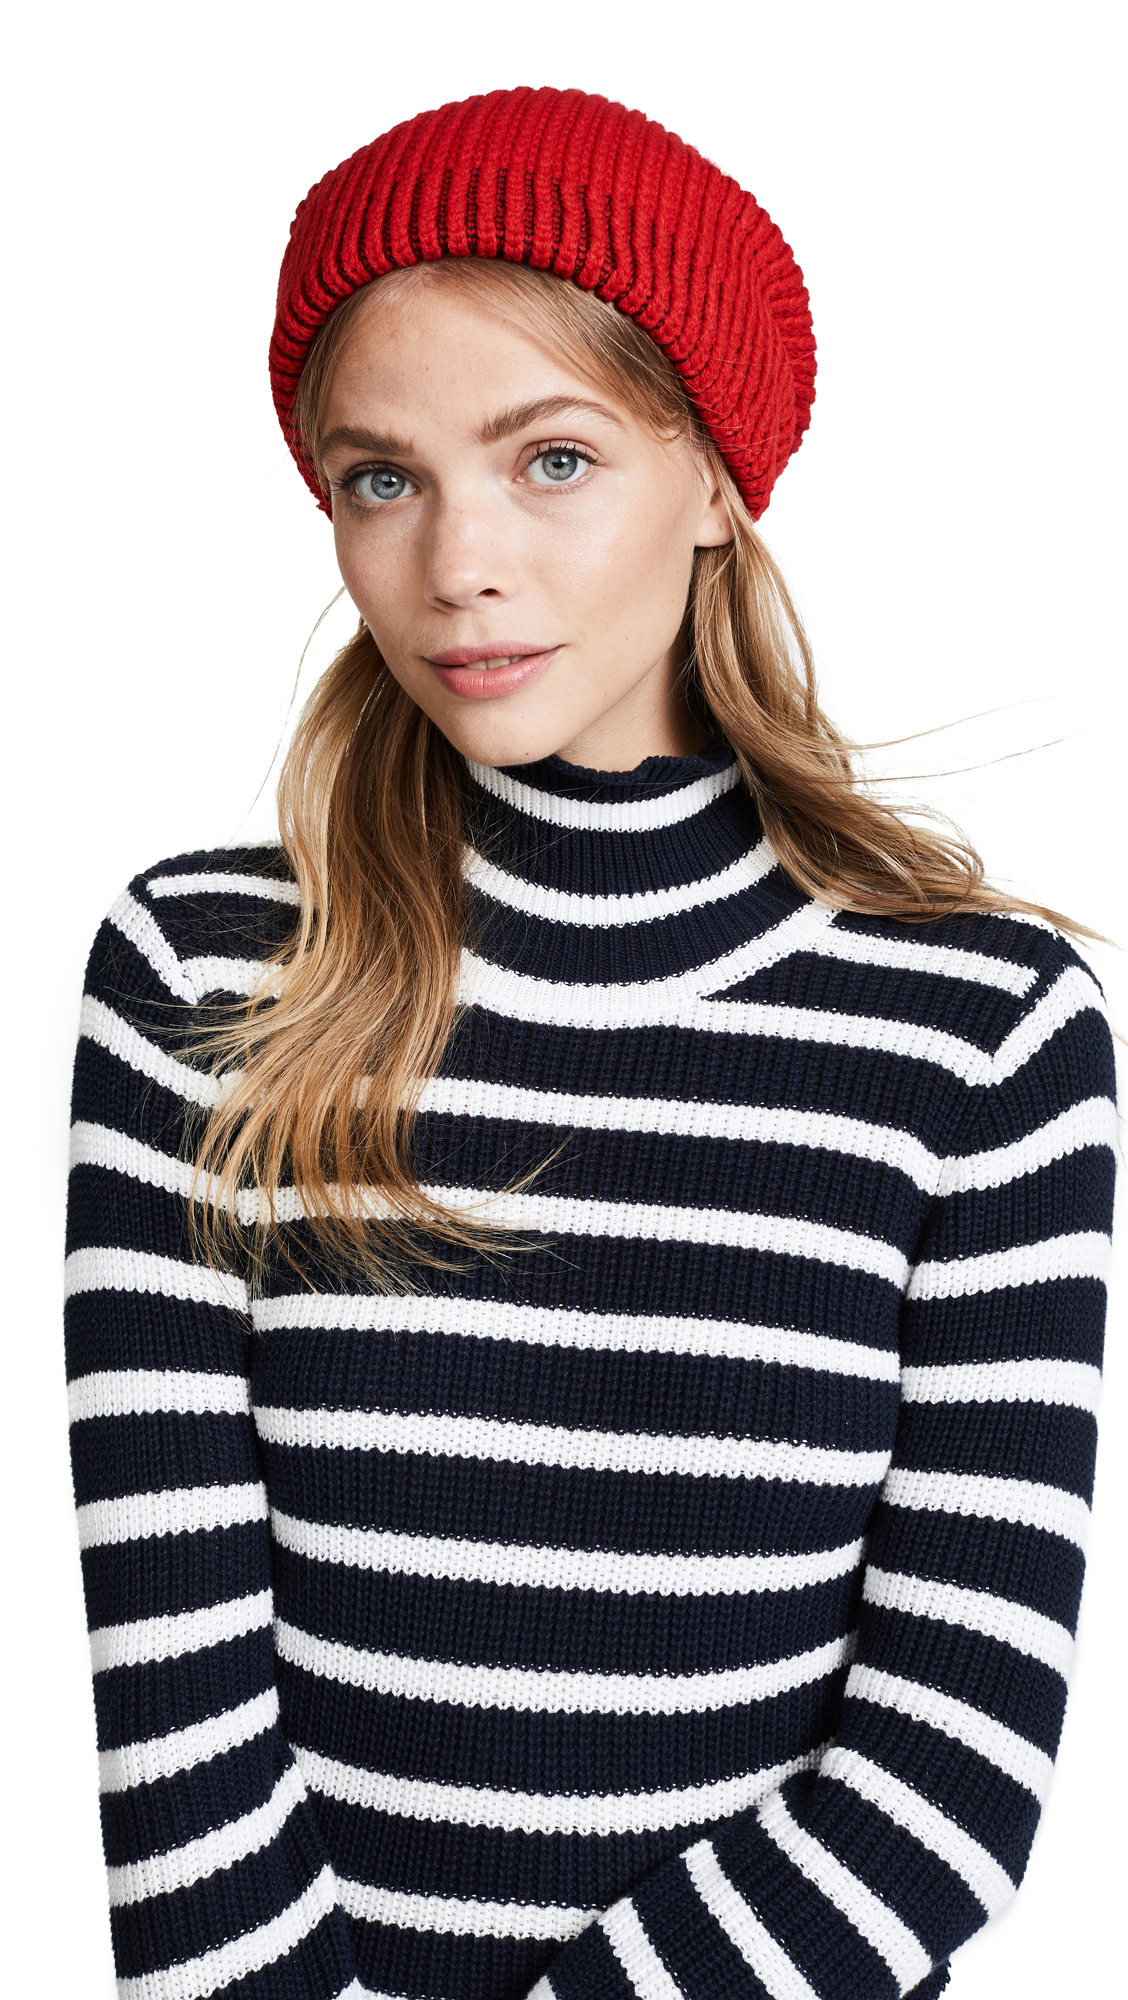 Free People All Day Everyday Slouchy Beanie Hat - Red